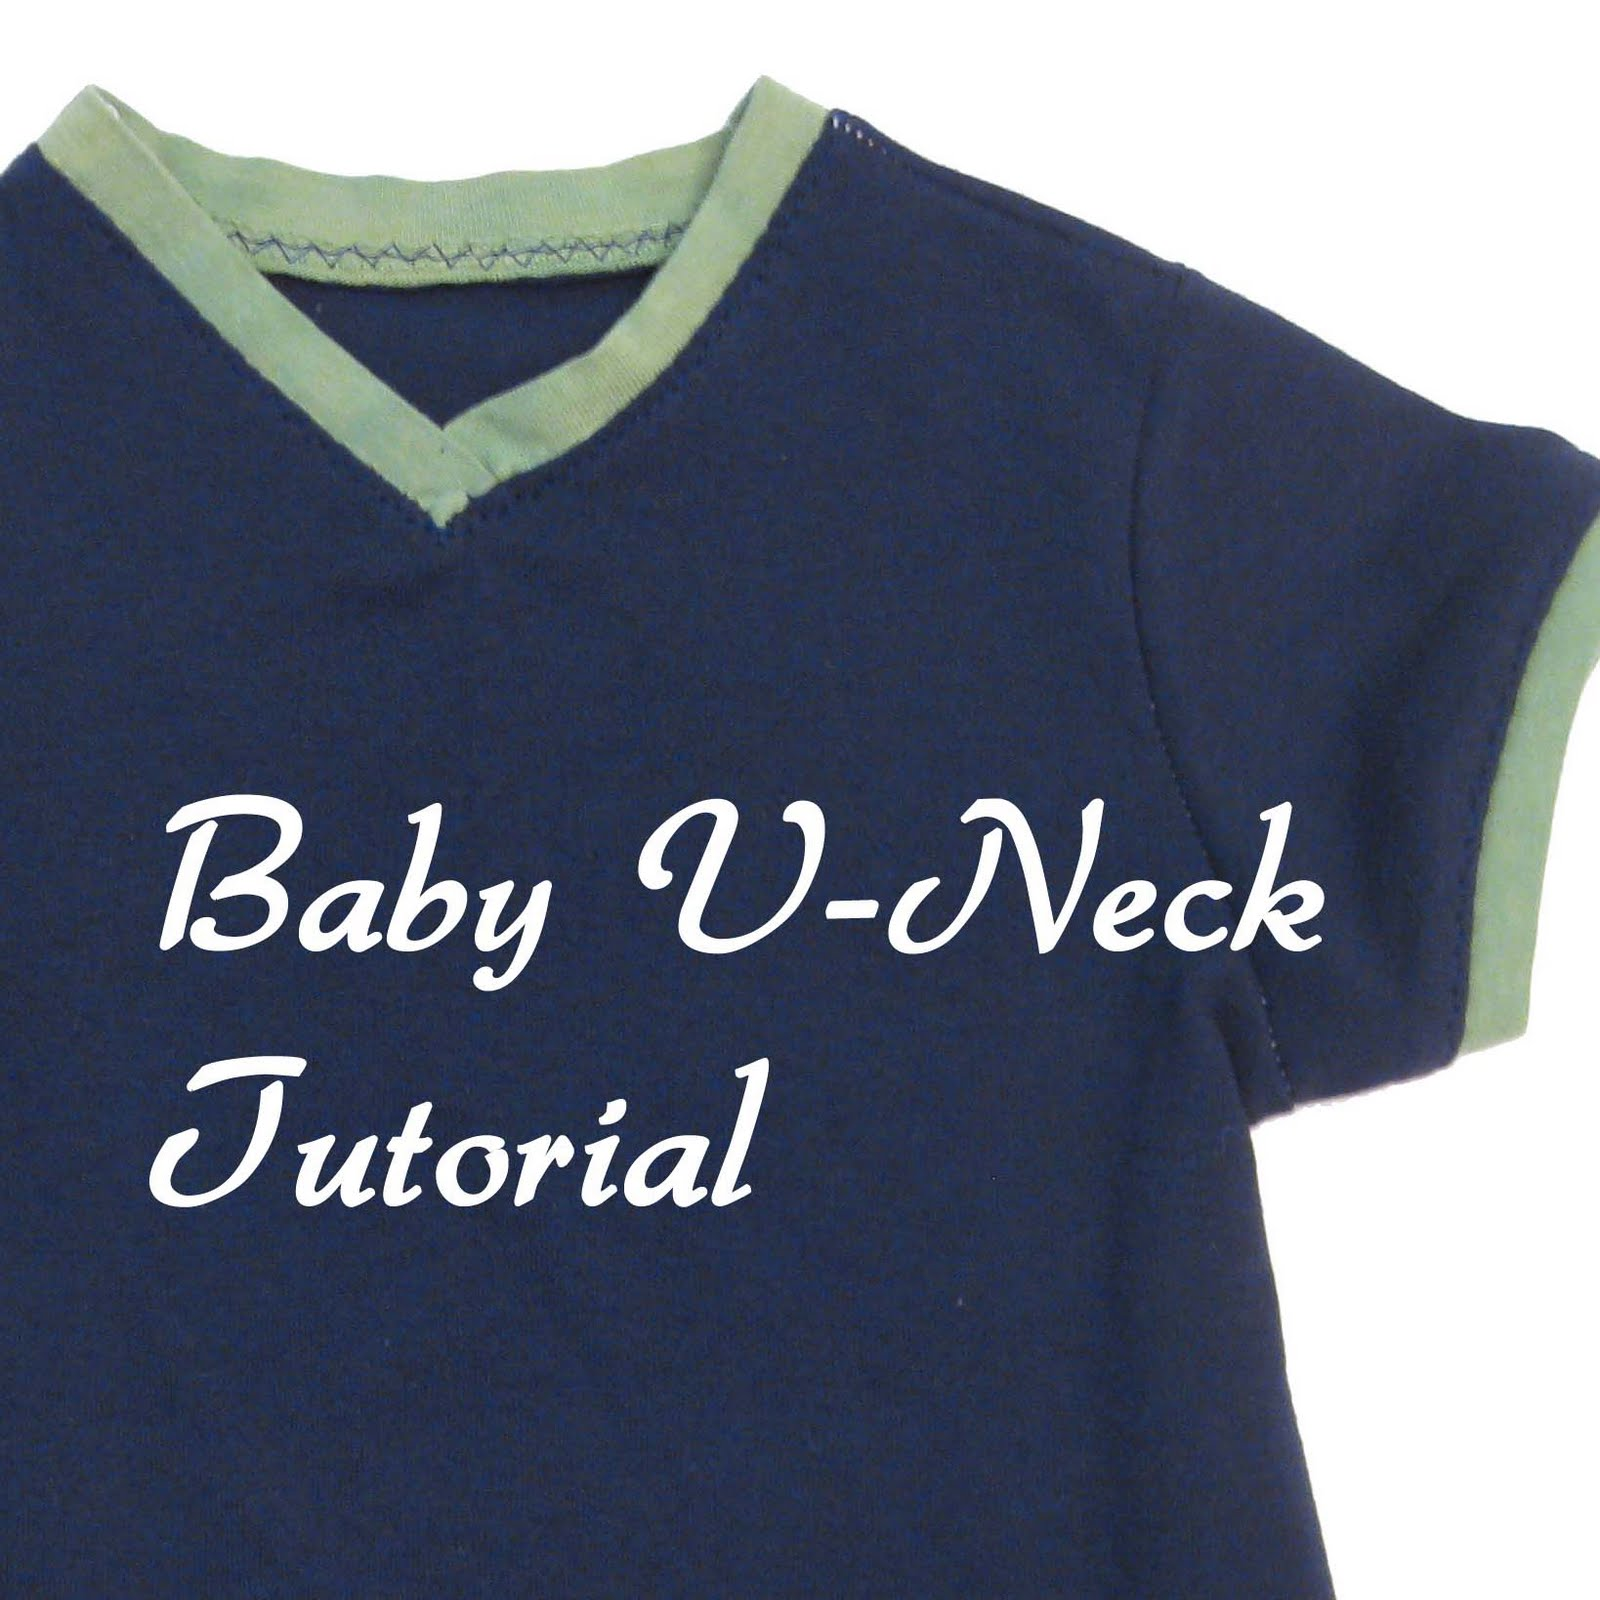 Baby V-Neck Tutorial - Sewing with Knits Mondays - Melly Sews